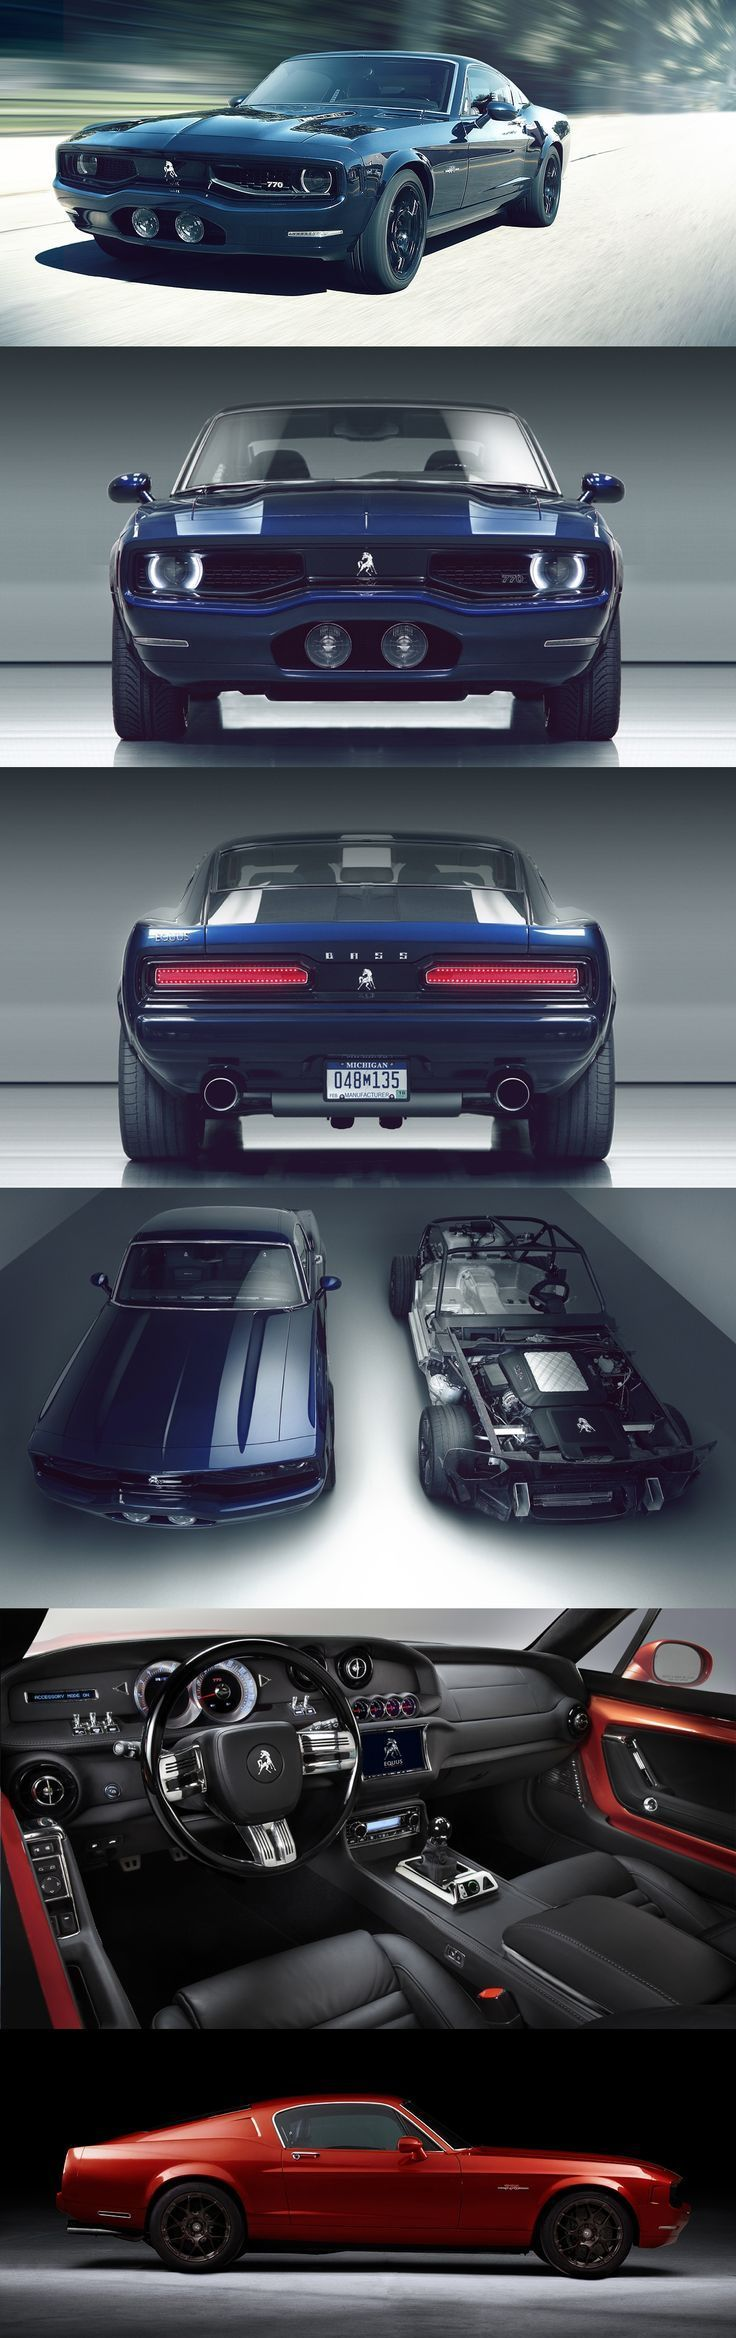 Equus Bass 770: The Ridiculous $250,000 Muscle Car For The 21st Century Badboy! Are you man enough? Hit the pic to find out... #americanmuscle